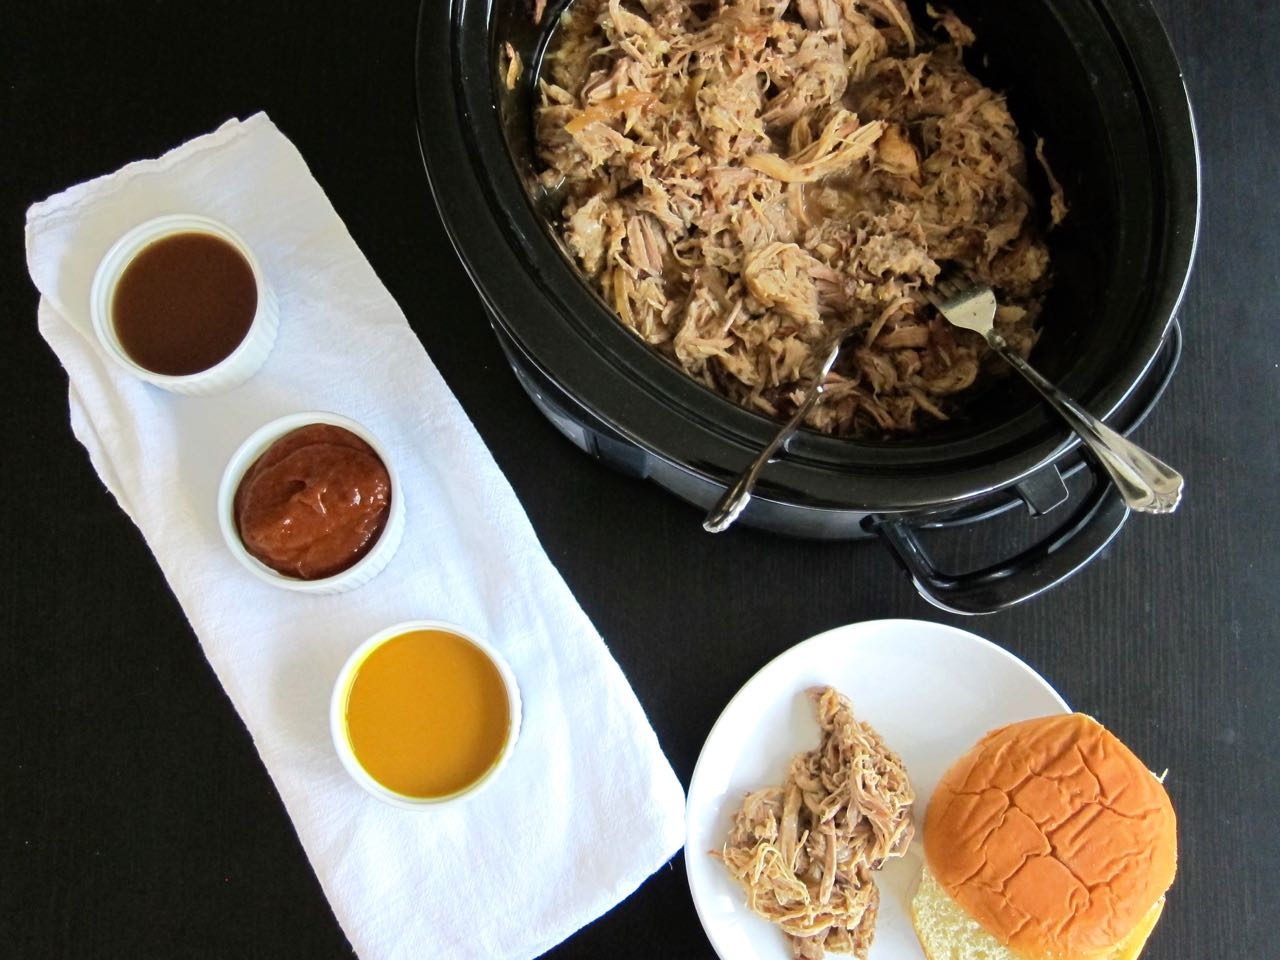 Pulled Pork with State BBQ sauces